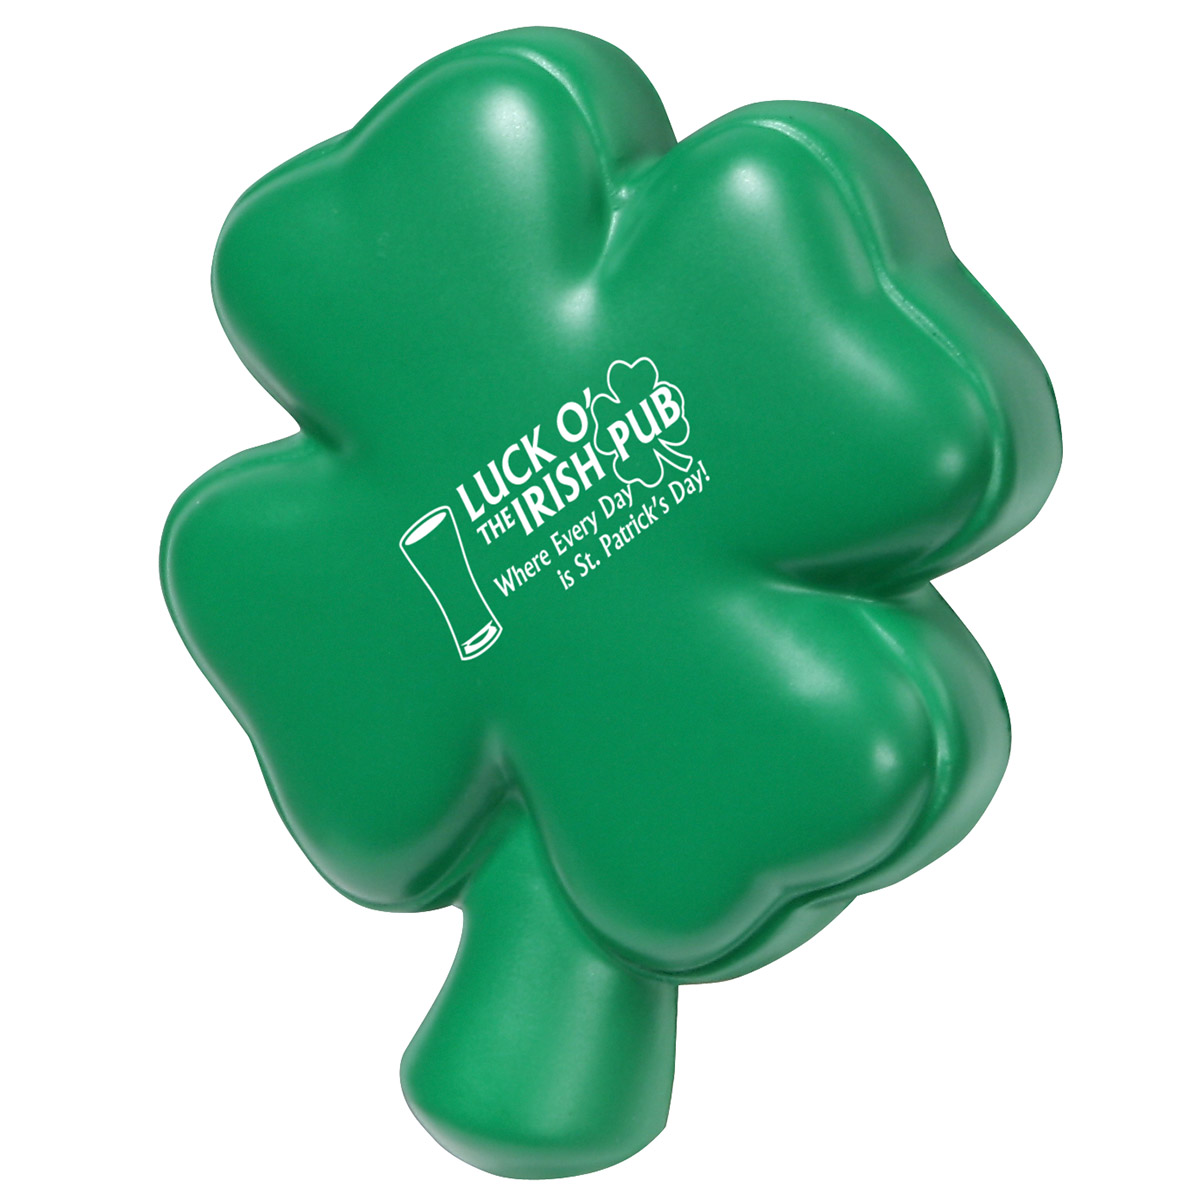 4-Leaf Clover Stress Reliever, LHO-FC08 - 1 Colour Imprint